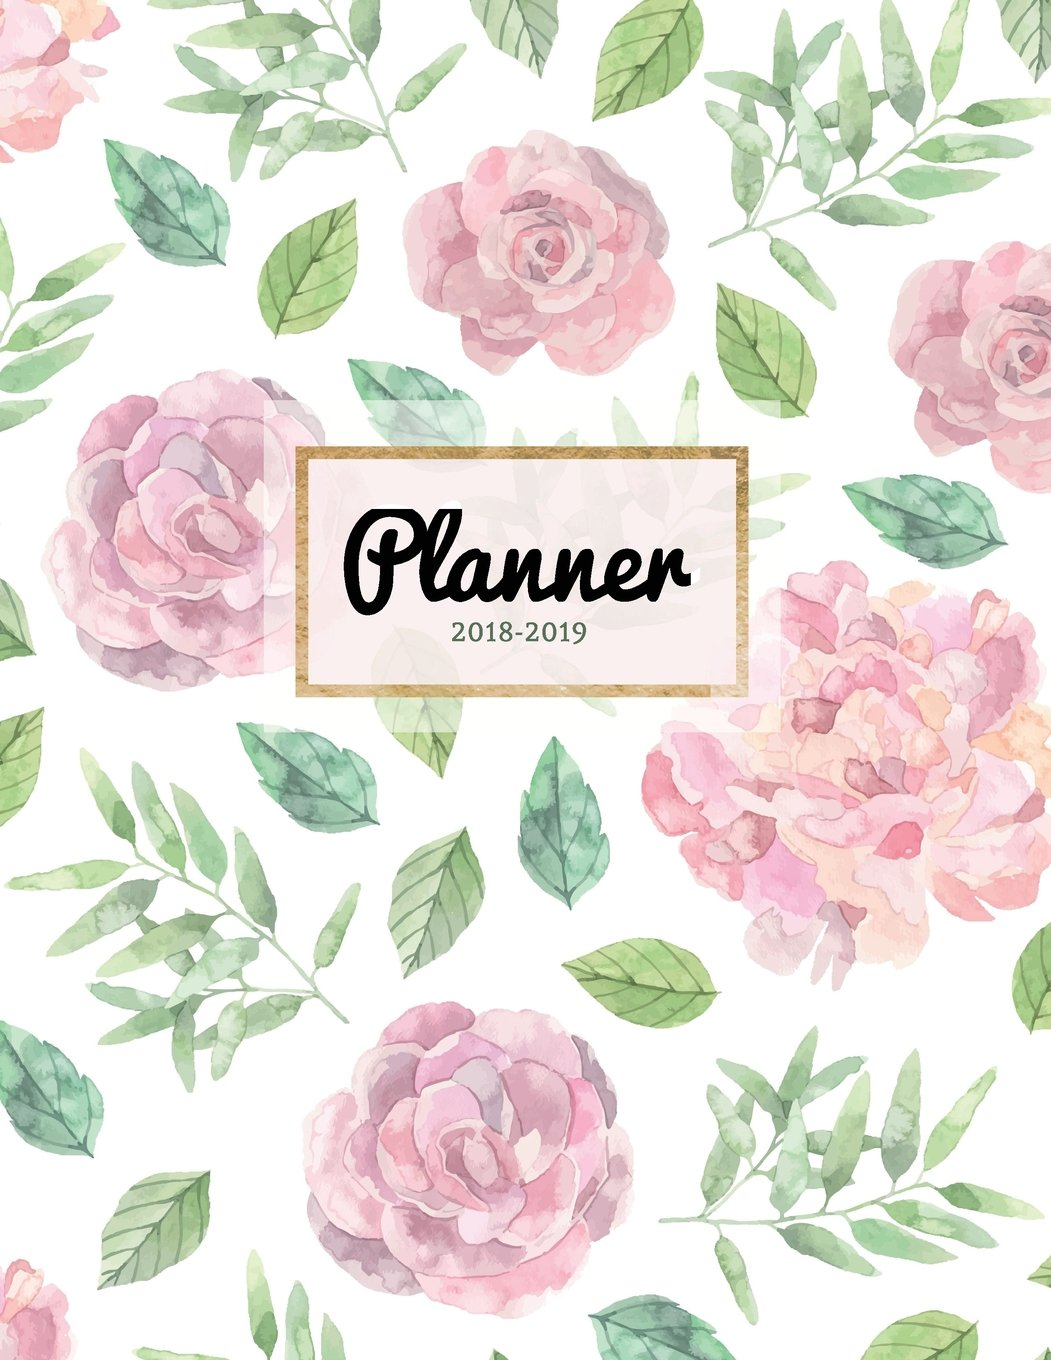 Read Online Planner 2018-2019: Pink Floral 18-Month Weekly Planner  July 2018 - Dec 2019 Weekly View  To-Do Lists, Inspirational Quotes + Much More (Mid Year Planners) (Volume 1) pdf